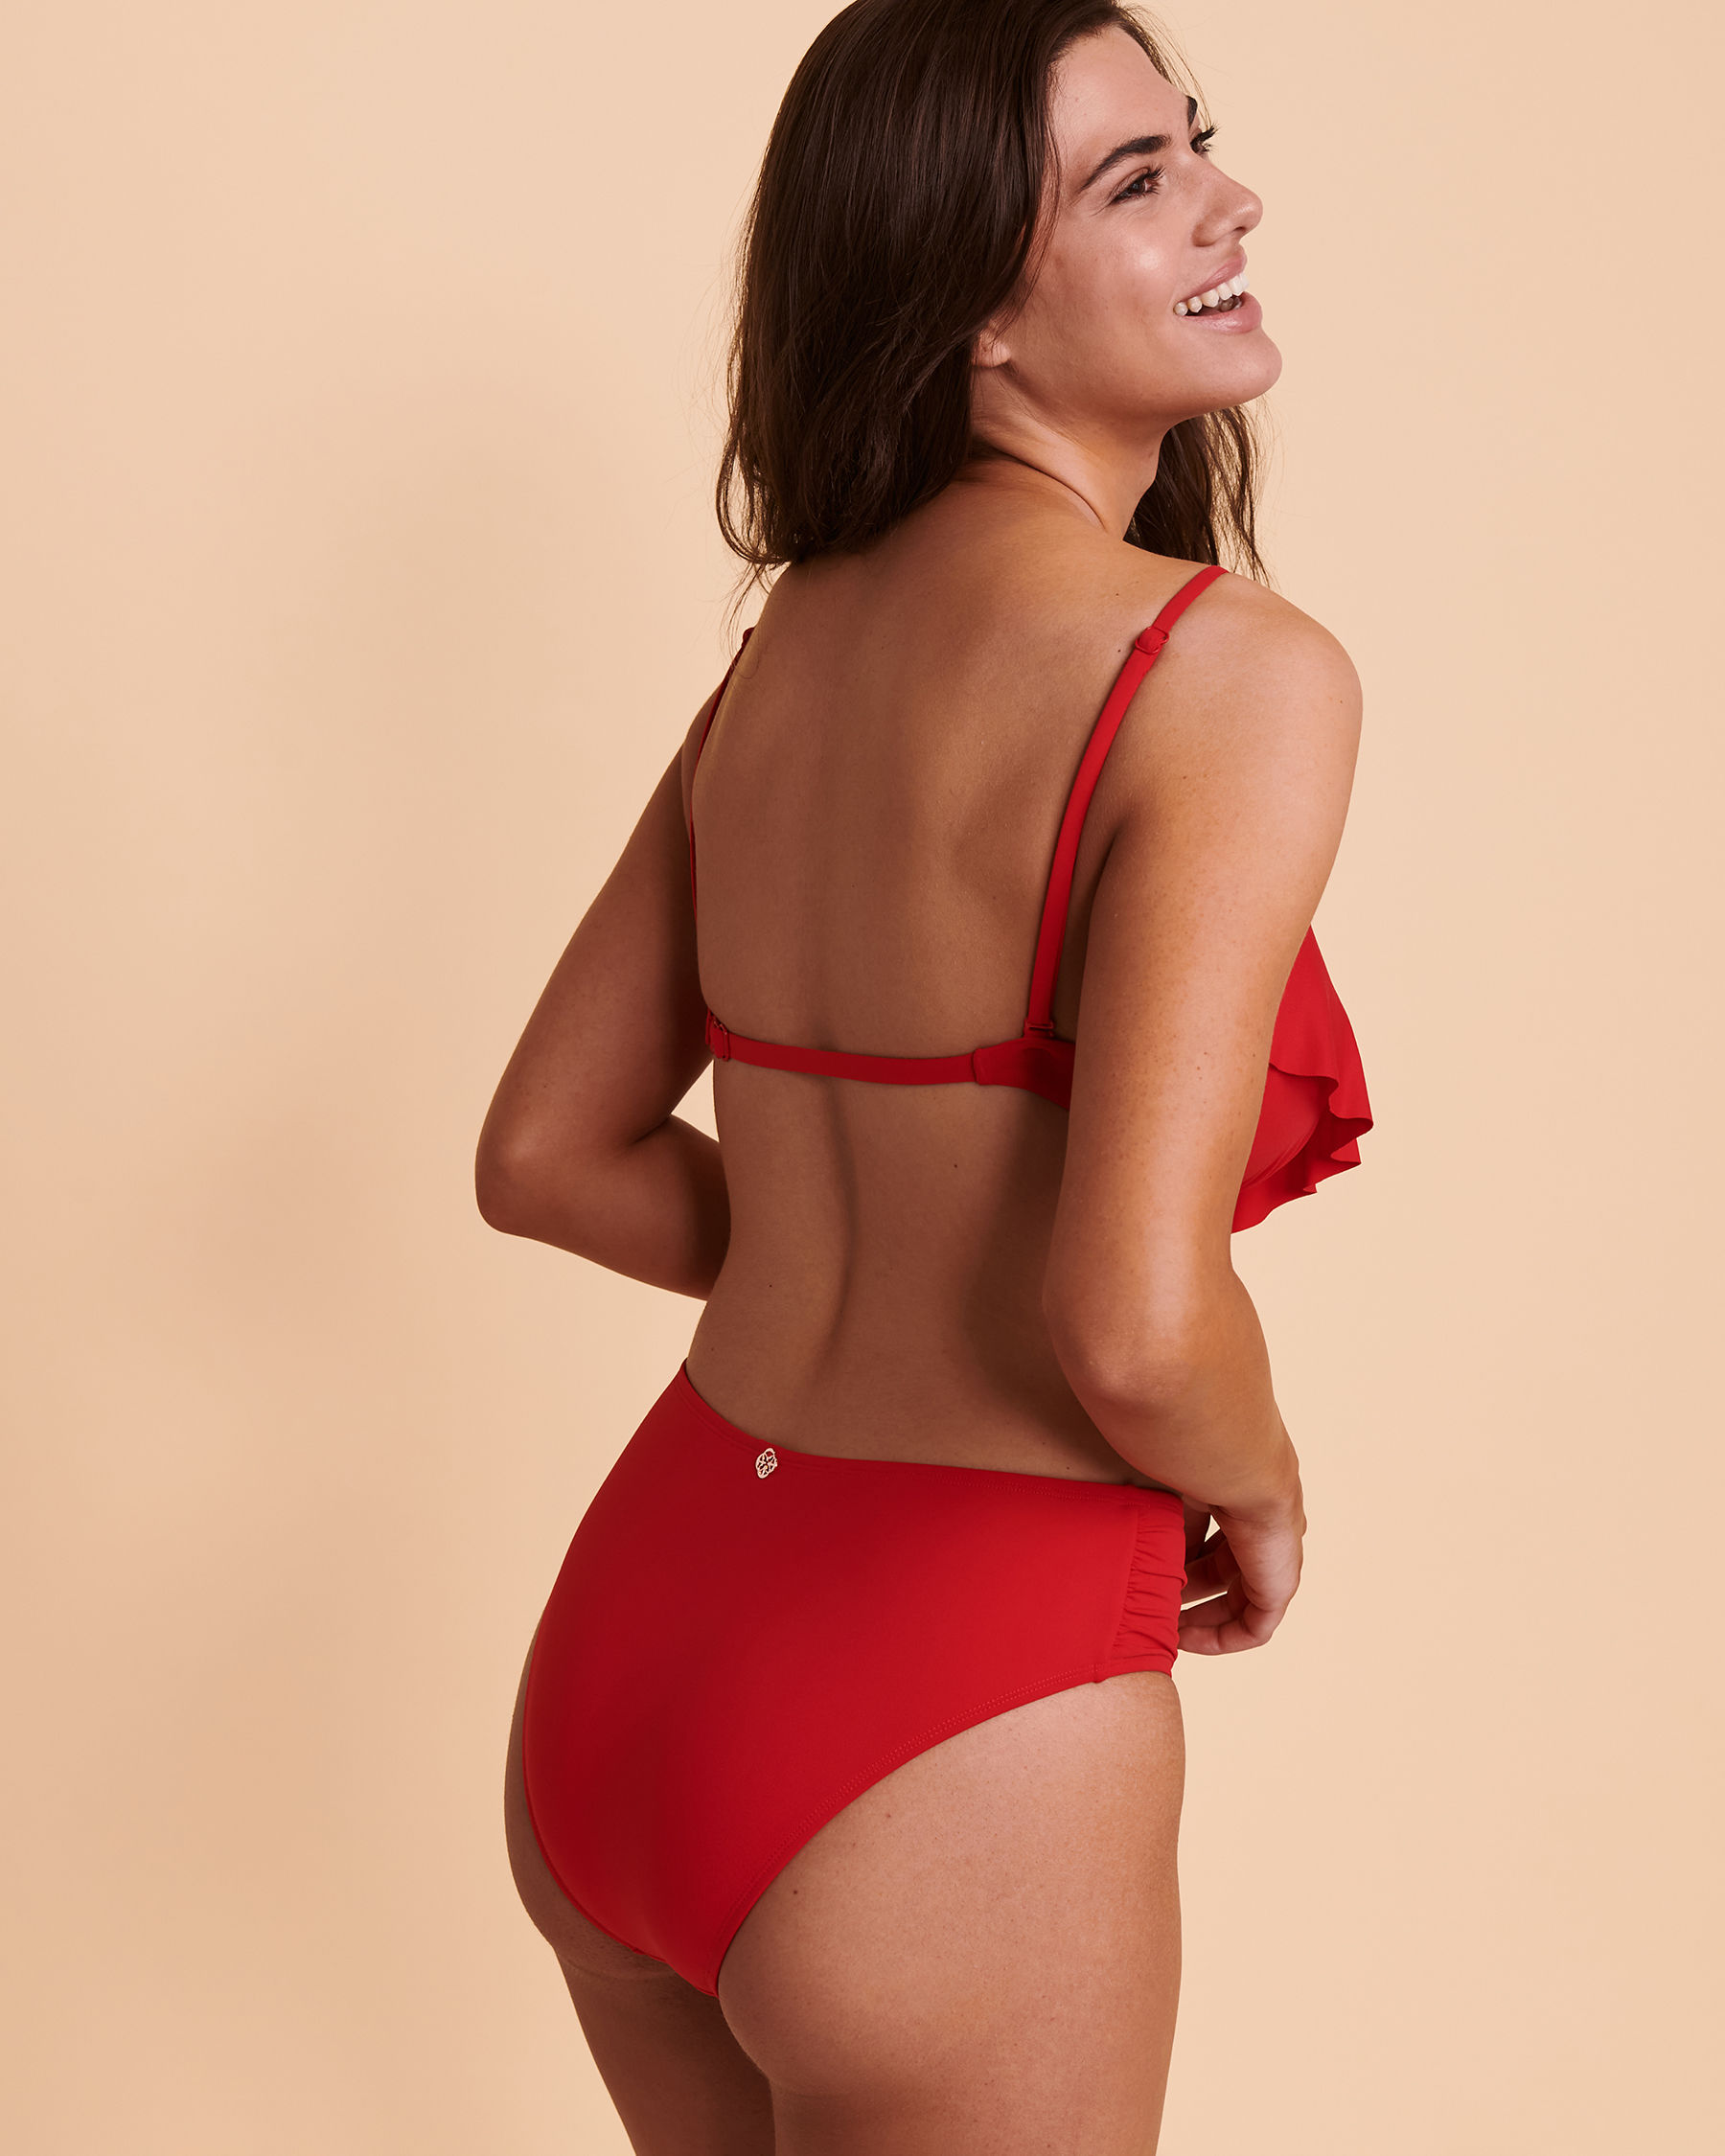 TURQUOISE COUTURE SOLID Ruffle Push-up Bikini Top Red 01100007 - View2